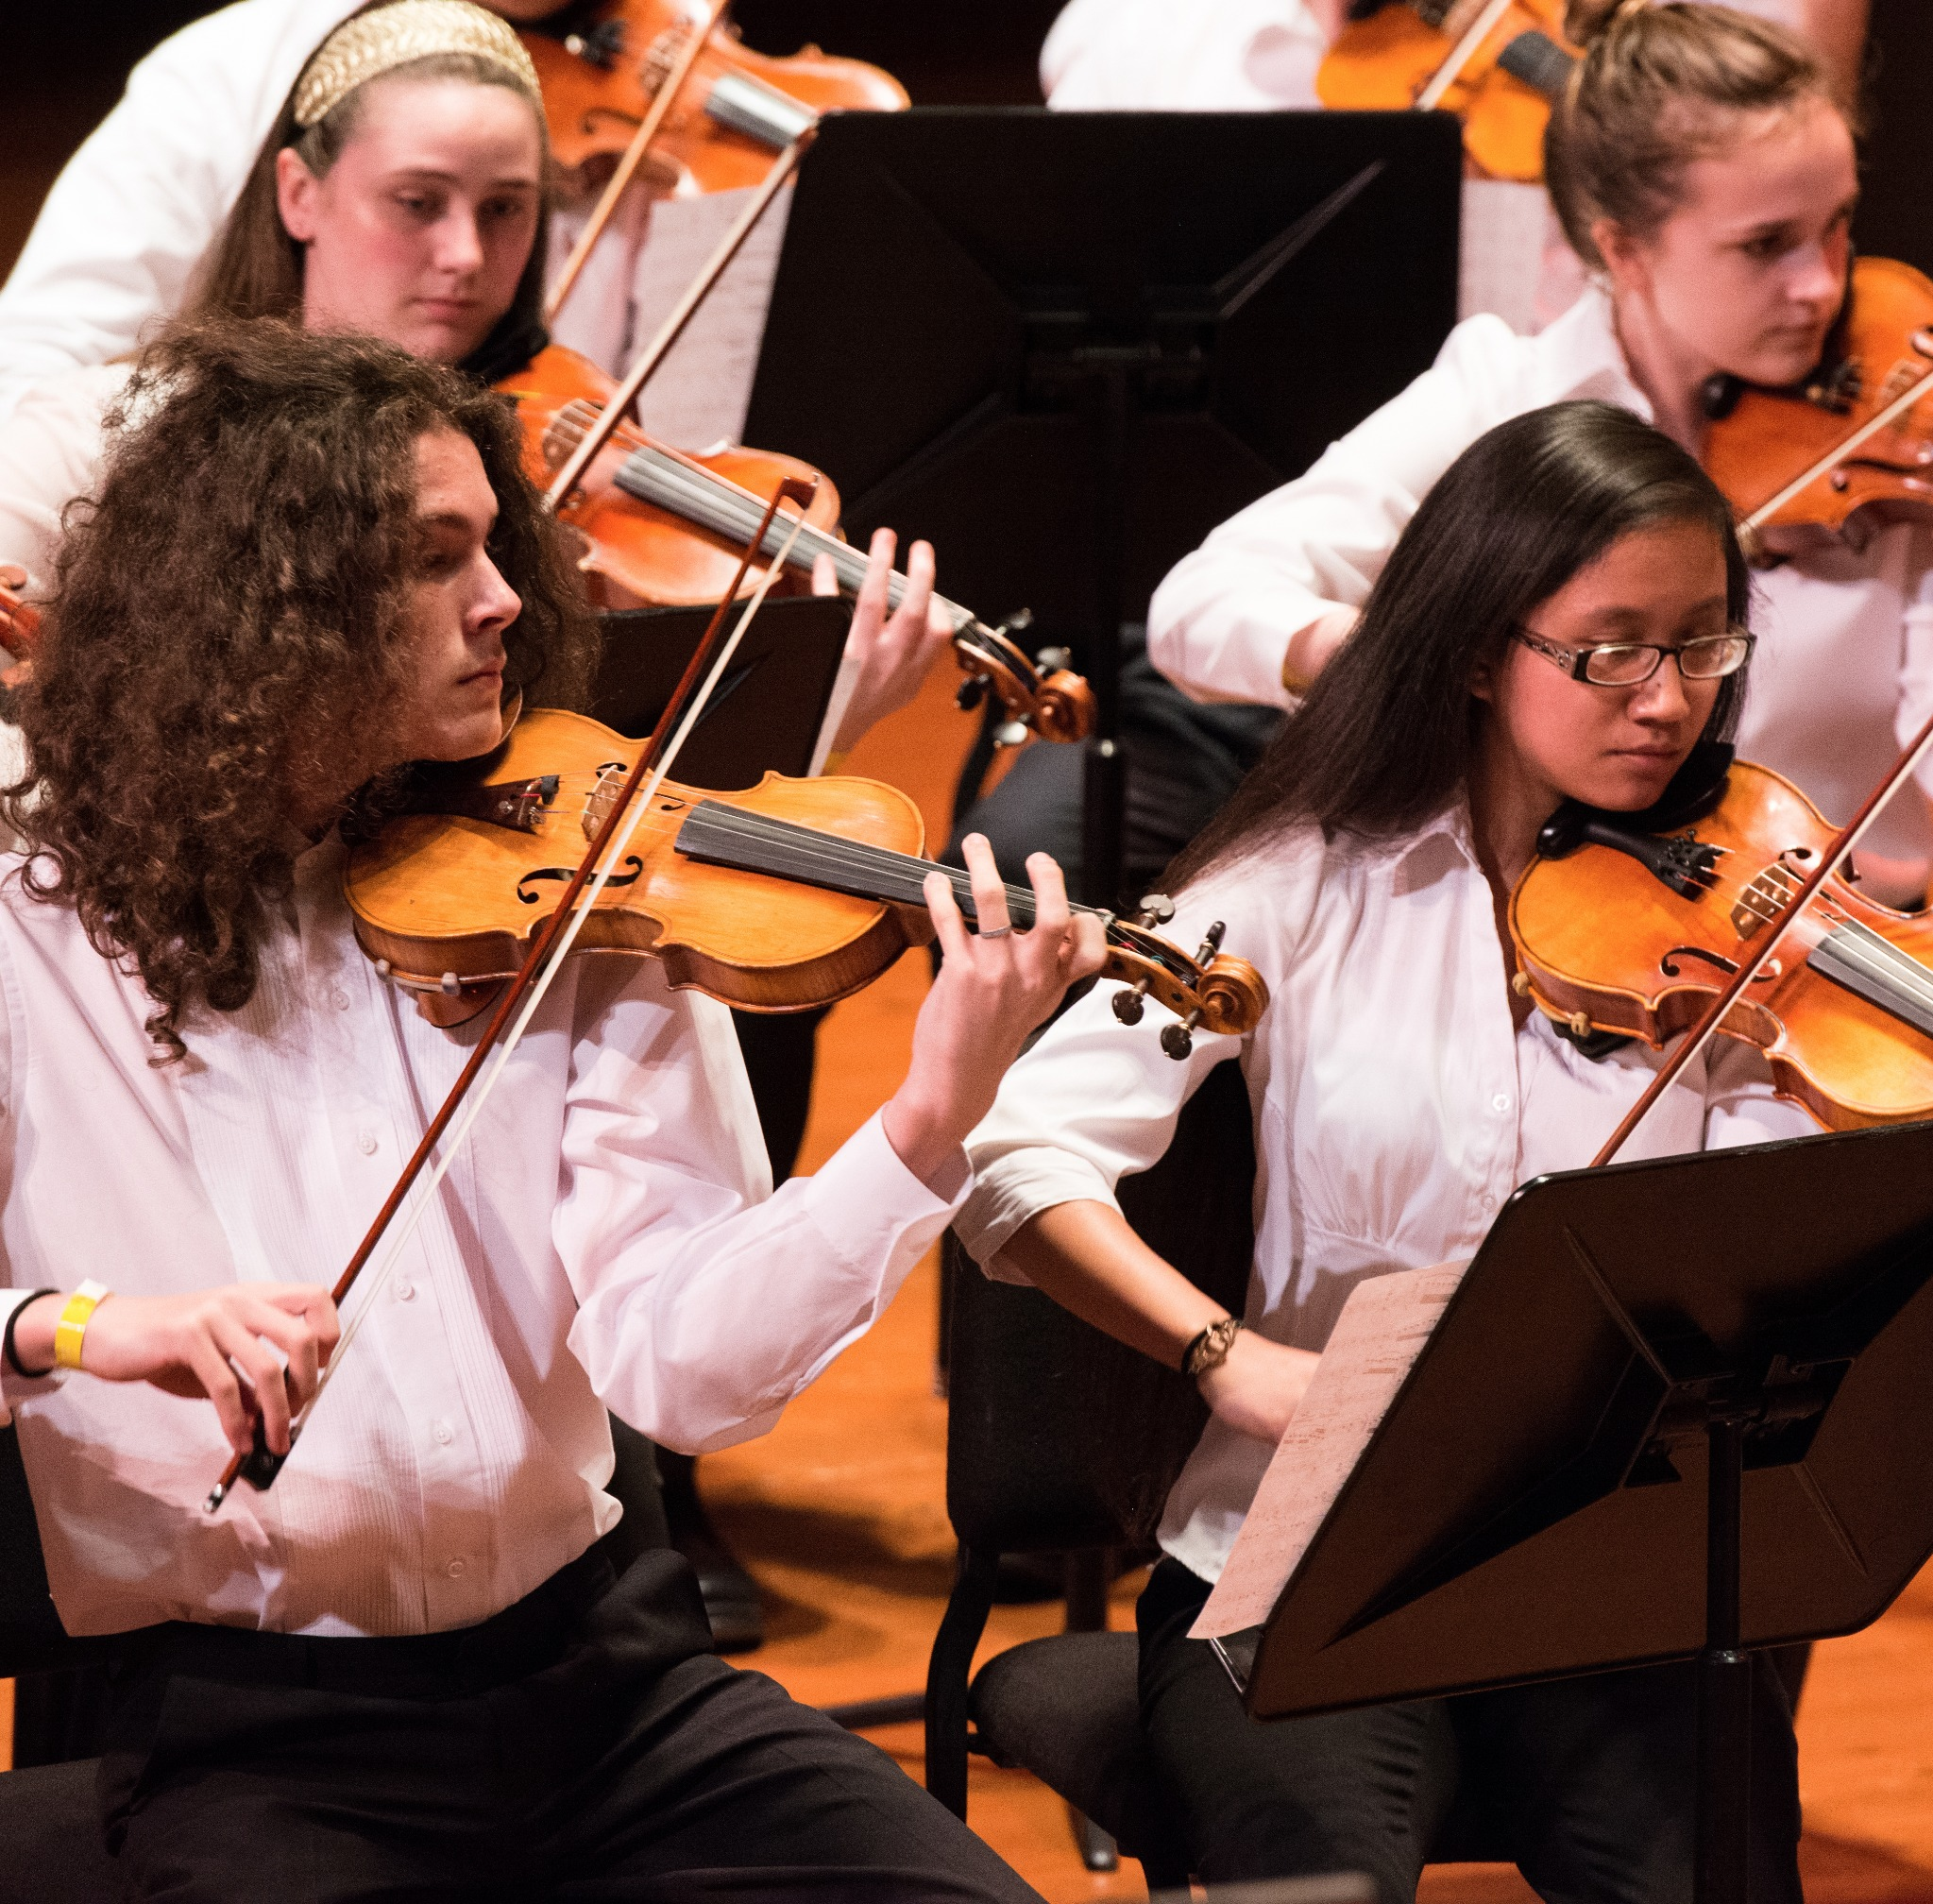 OSAI 2016 Institute Orchestra Performances – Video